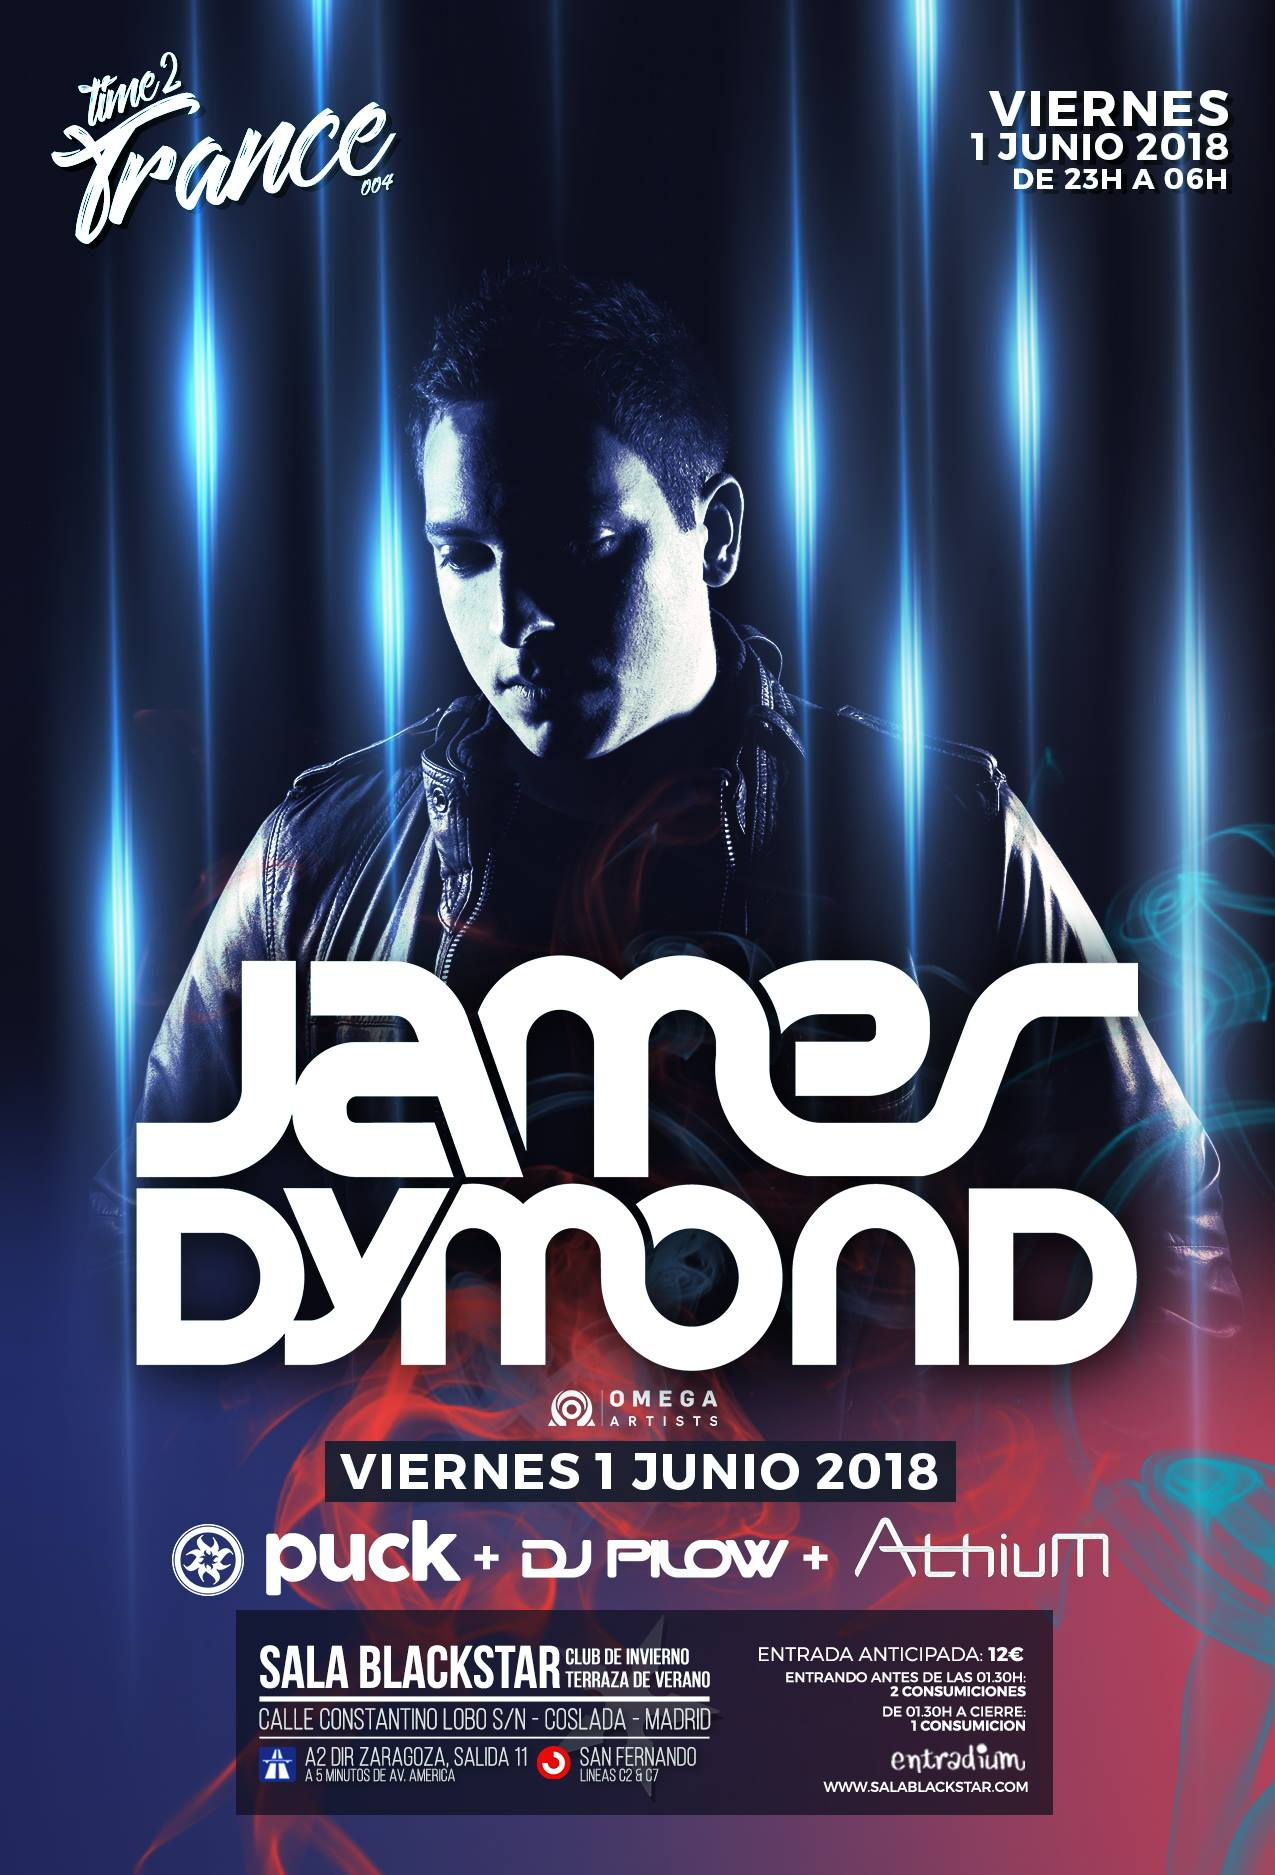 Time2Trance con James Dymond